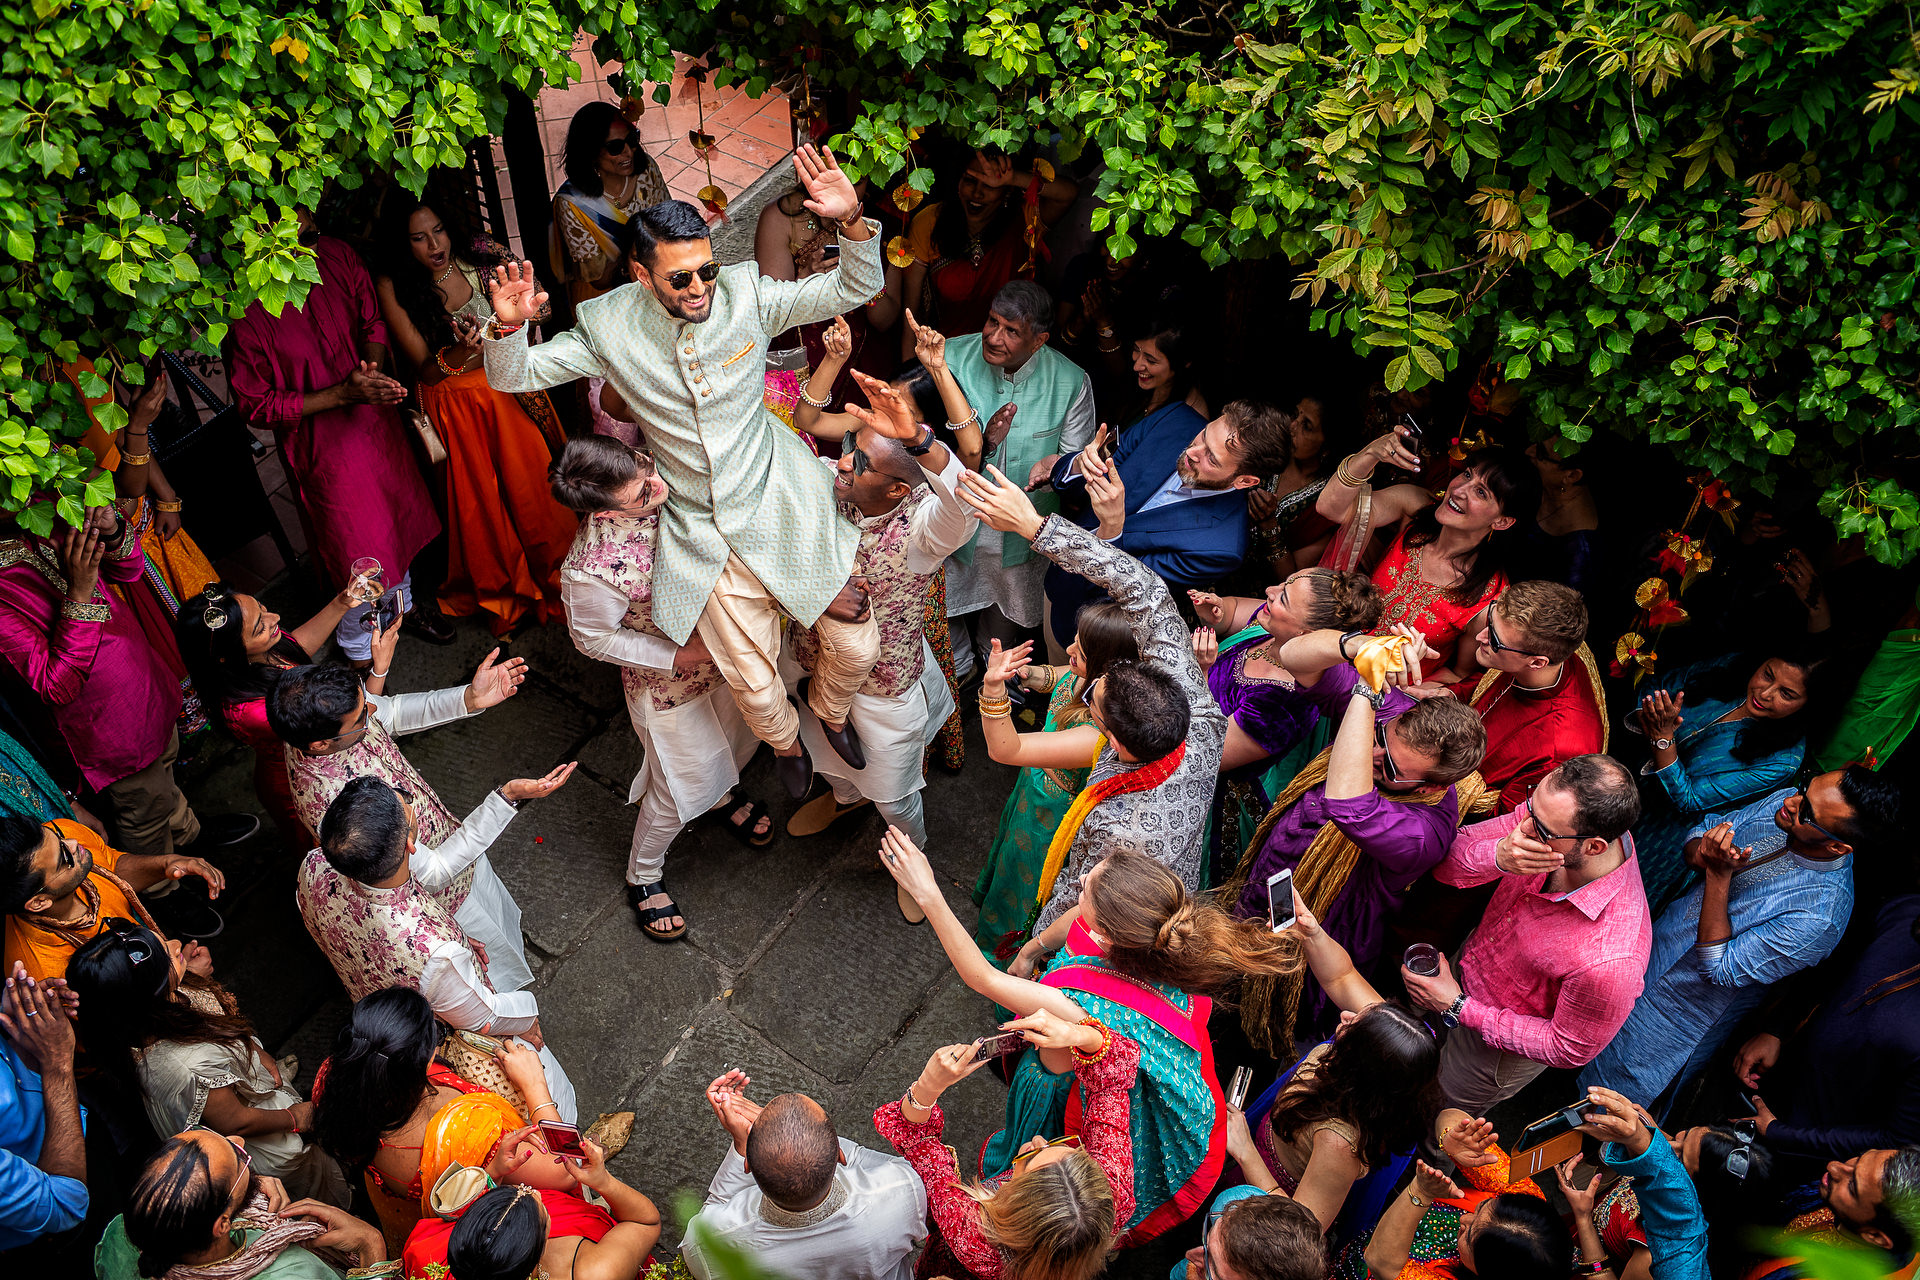 Wedding Photography of Indian traditional dancing with groom at a royal wedding fit for a king